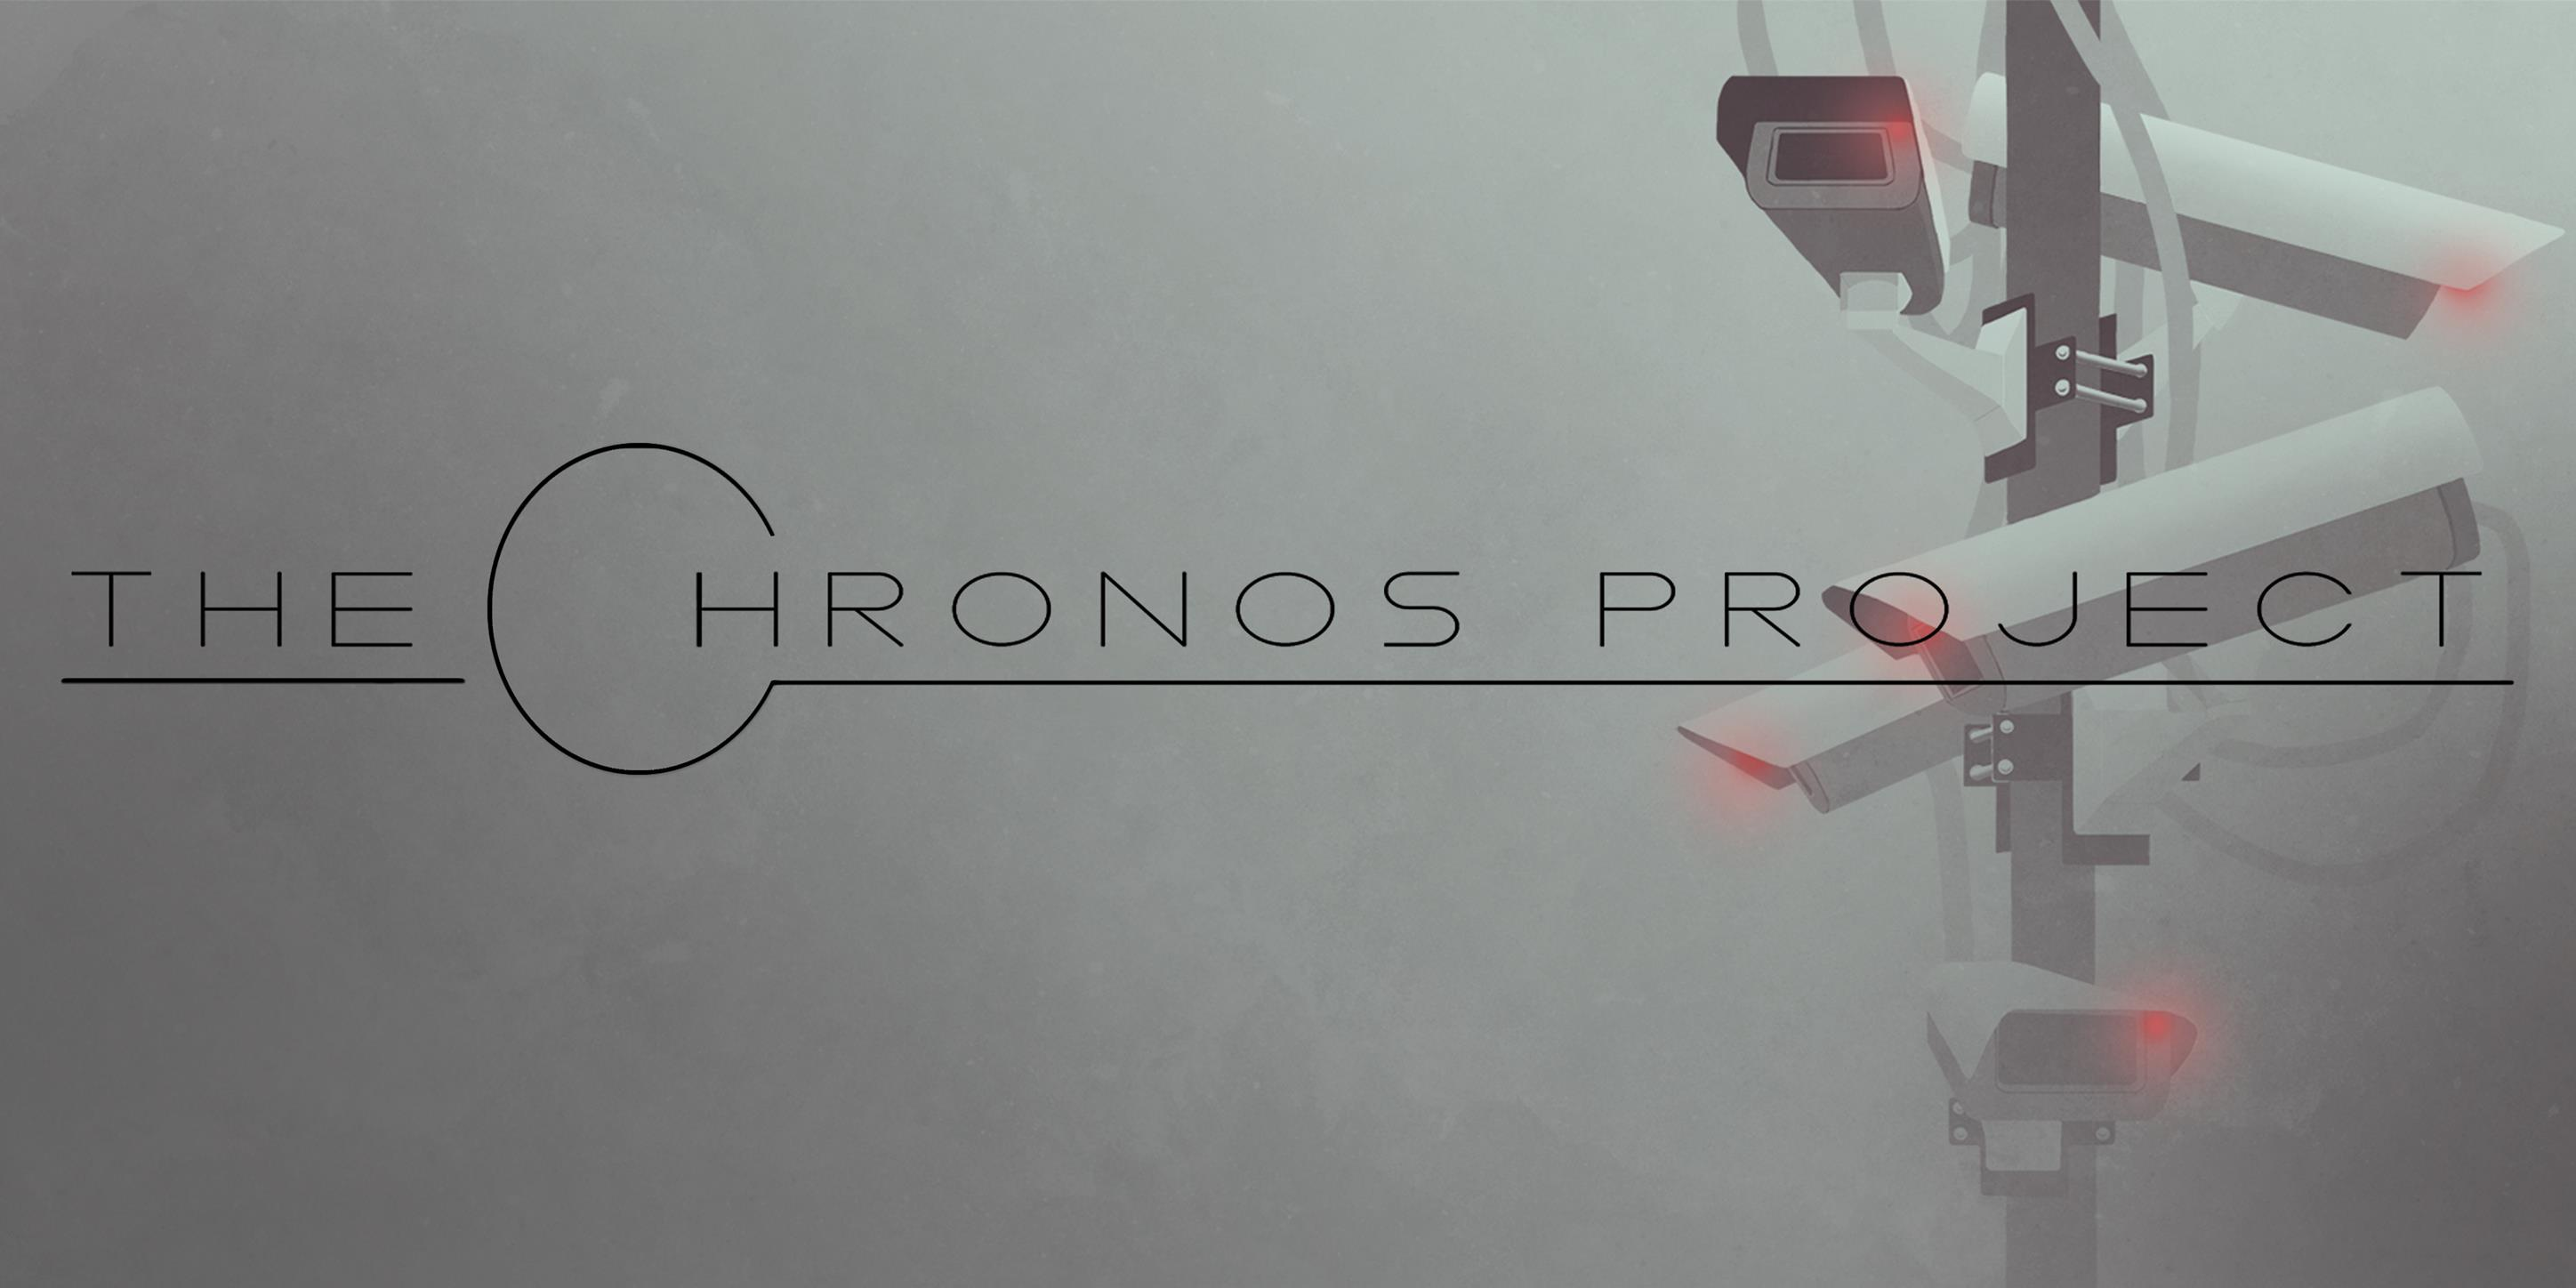 The Chronos Project